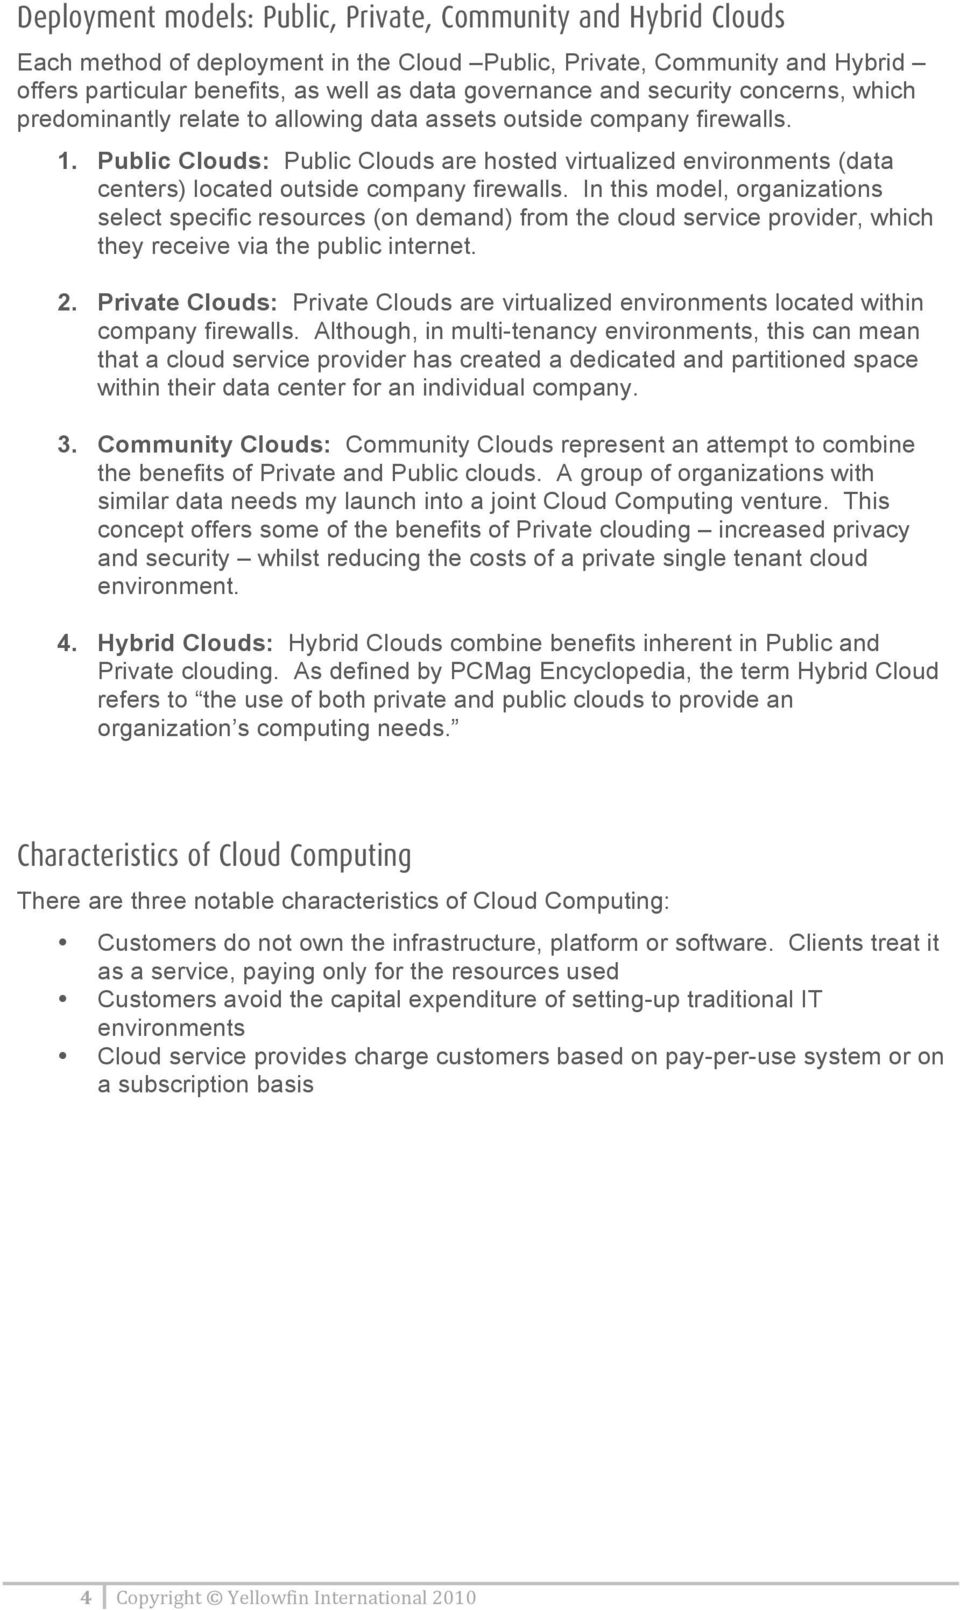 Public Clouds: Public Clouds are hosted virtualized environments (data centers) located outside company firewalls.